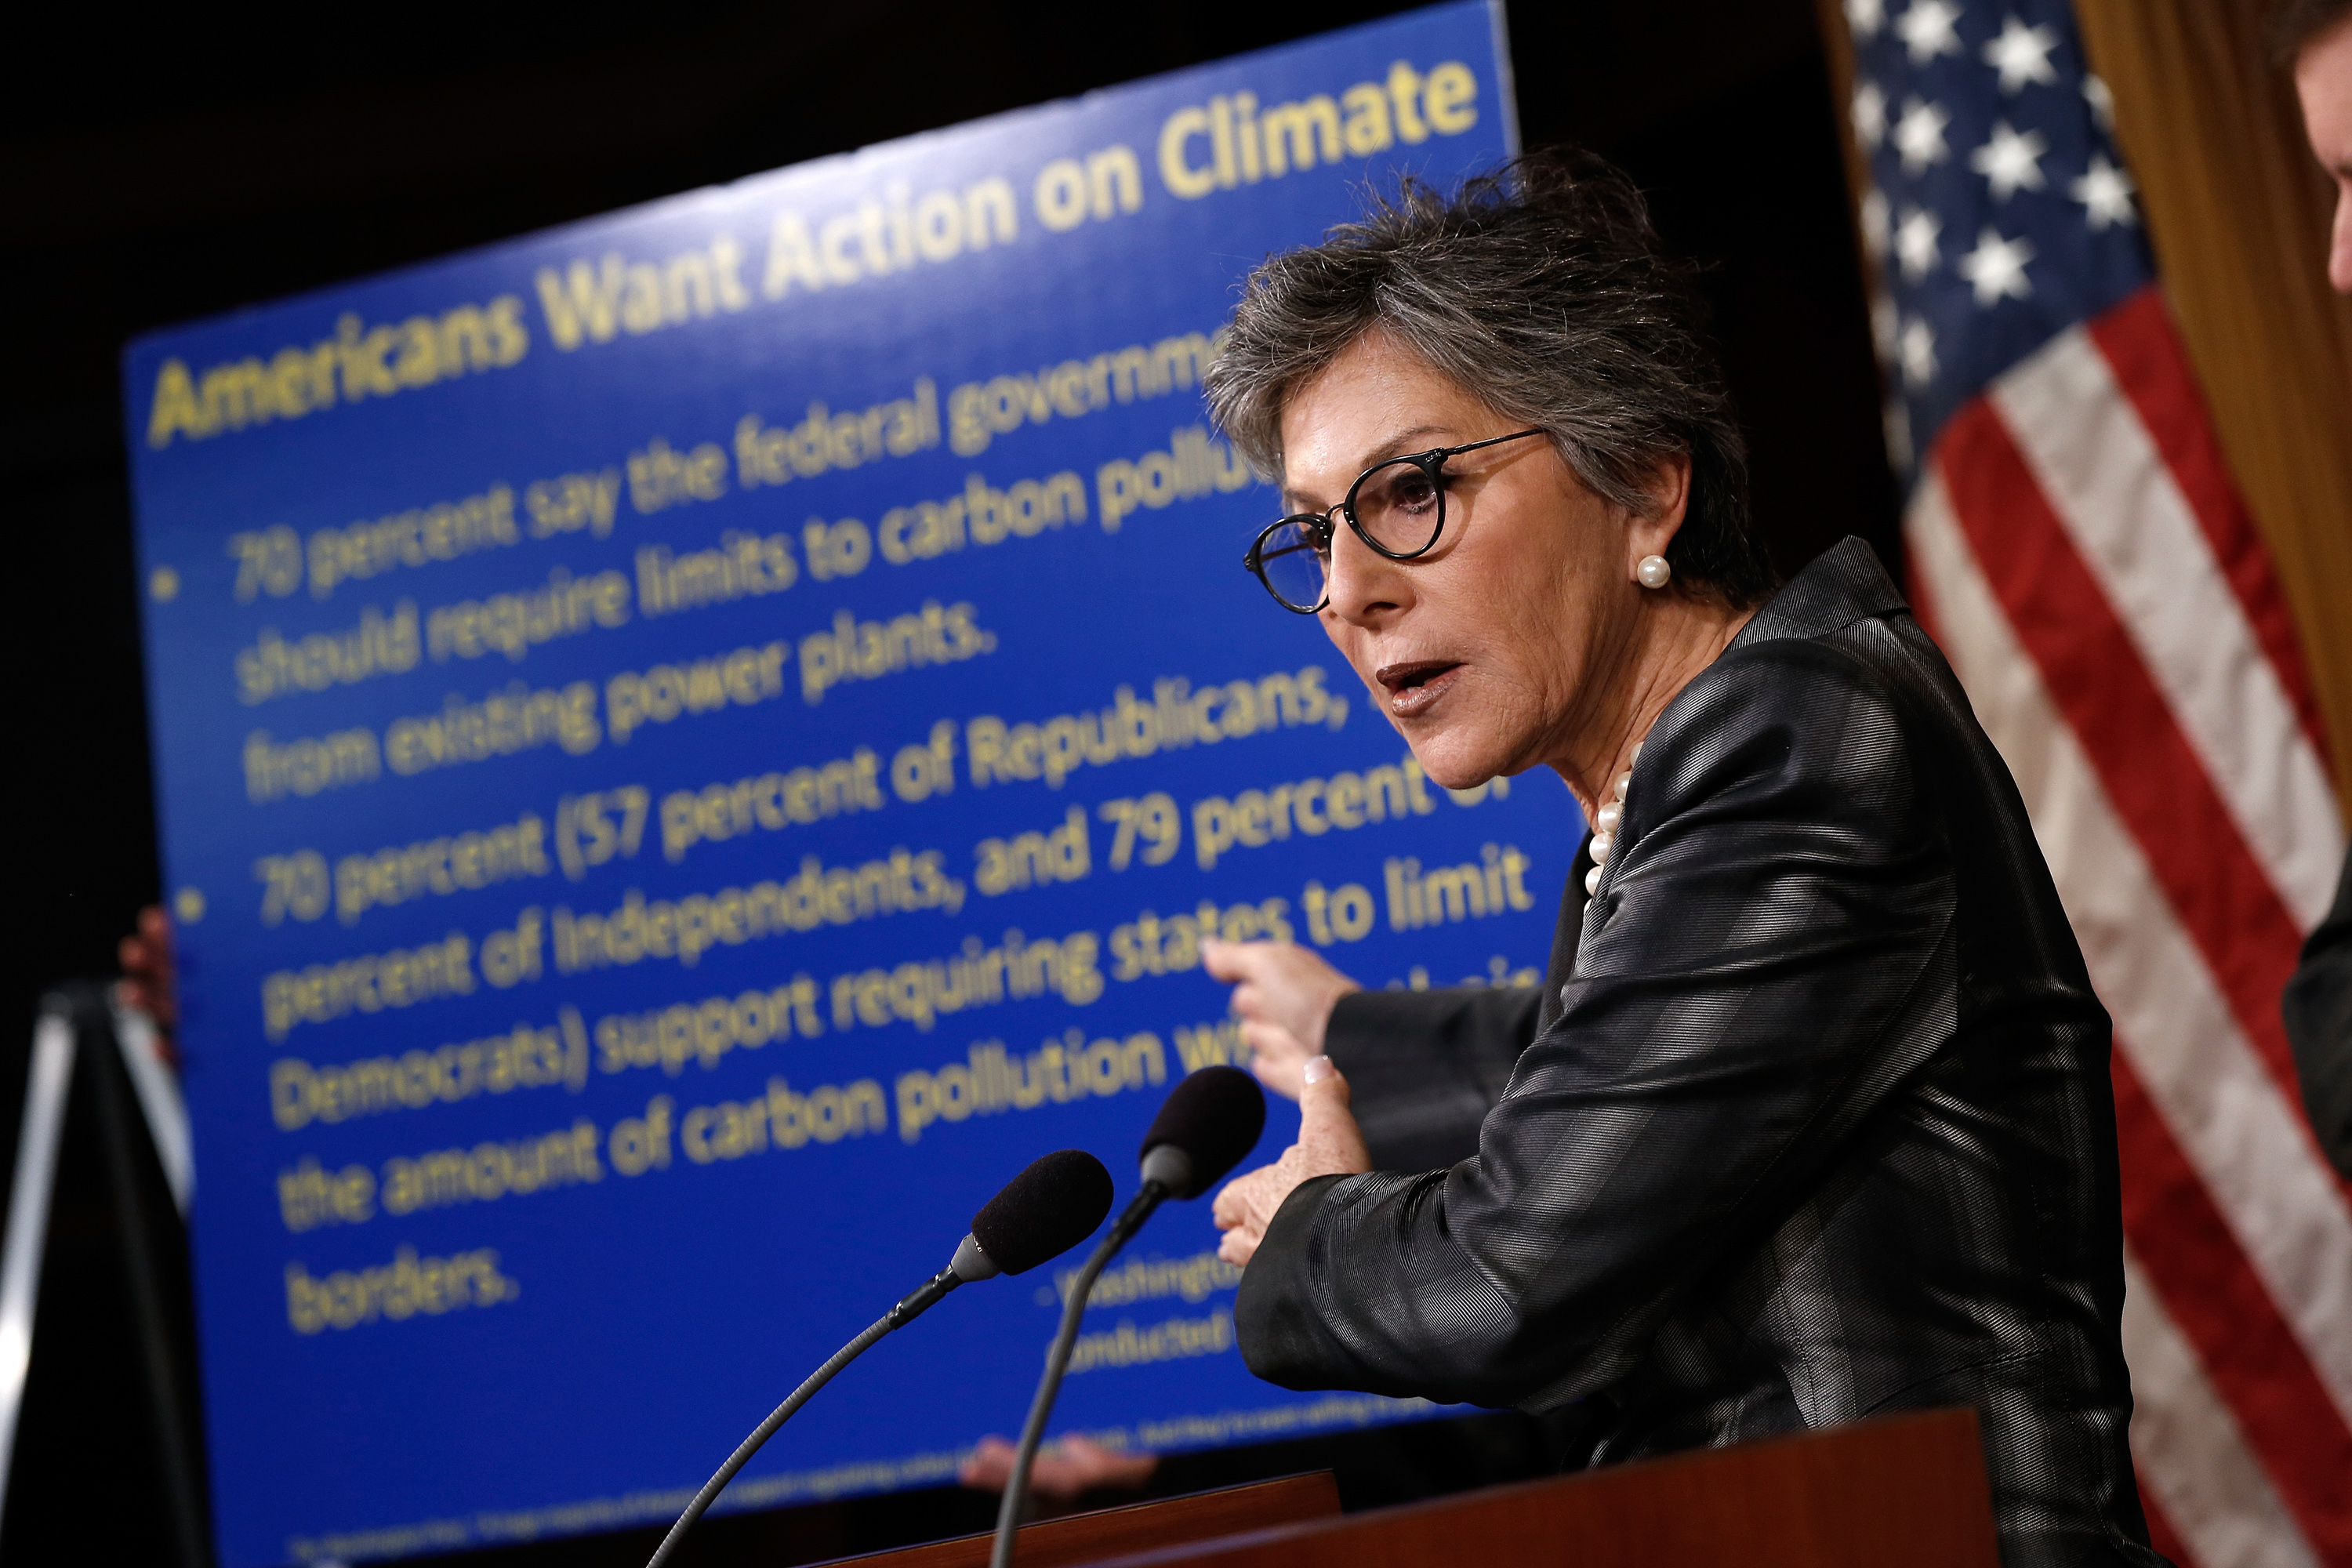 US Senate agrees that climate change is real in a 98 to 1 vote